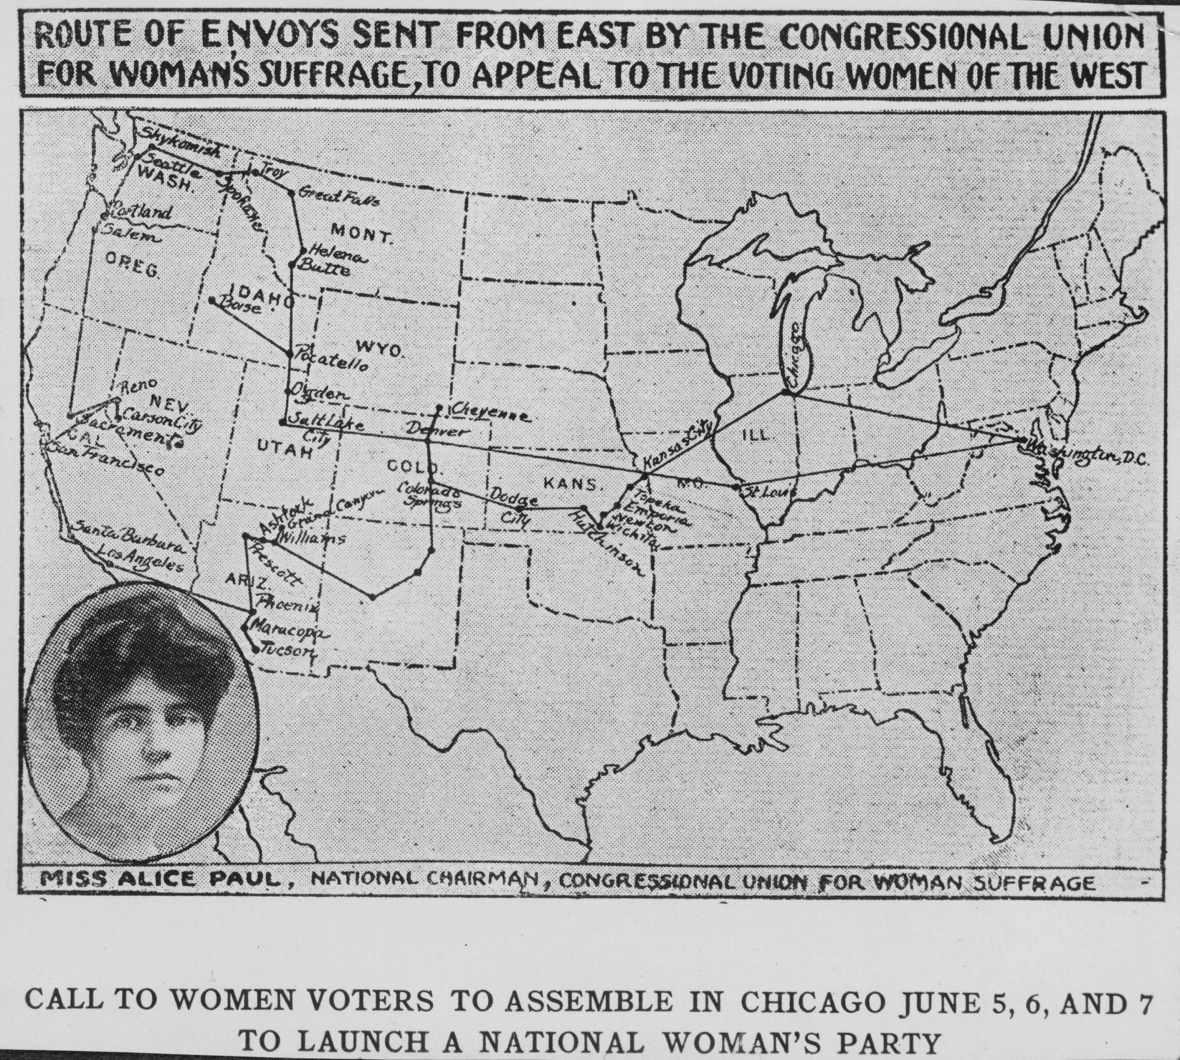 Route of Envoys Sent from East by the Congressional Union for Woman's Suffrage, to Appeal the Voting Women of the West